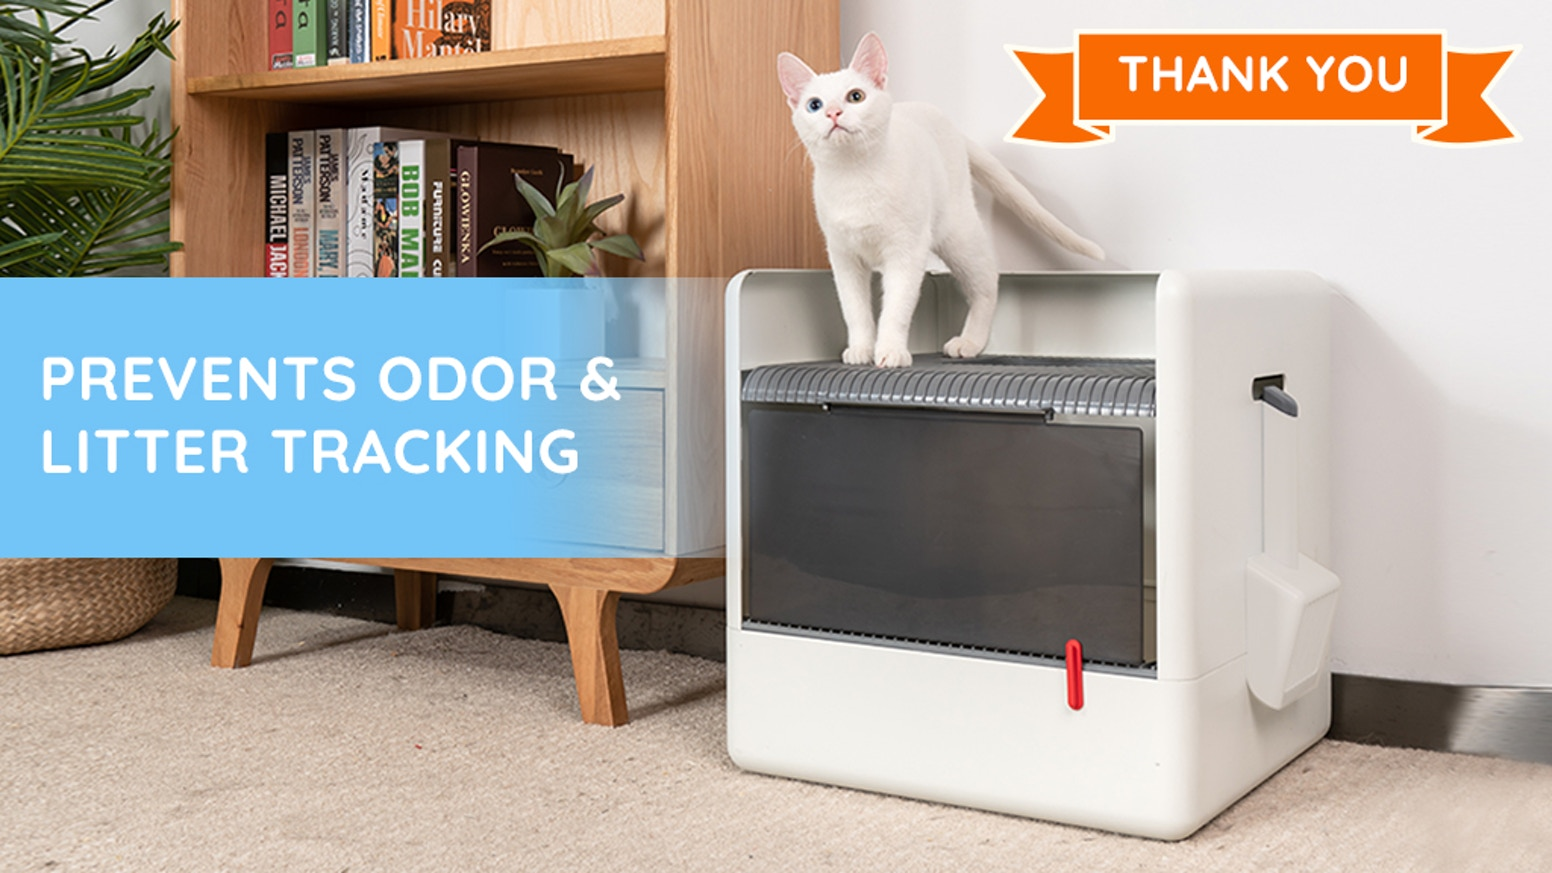 No Tracking | No Odor | Closed & Minimalist Design | Pet-friendly | All Cat Sizes & Ages | Elizabethan Collar Compatible